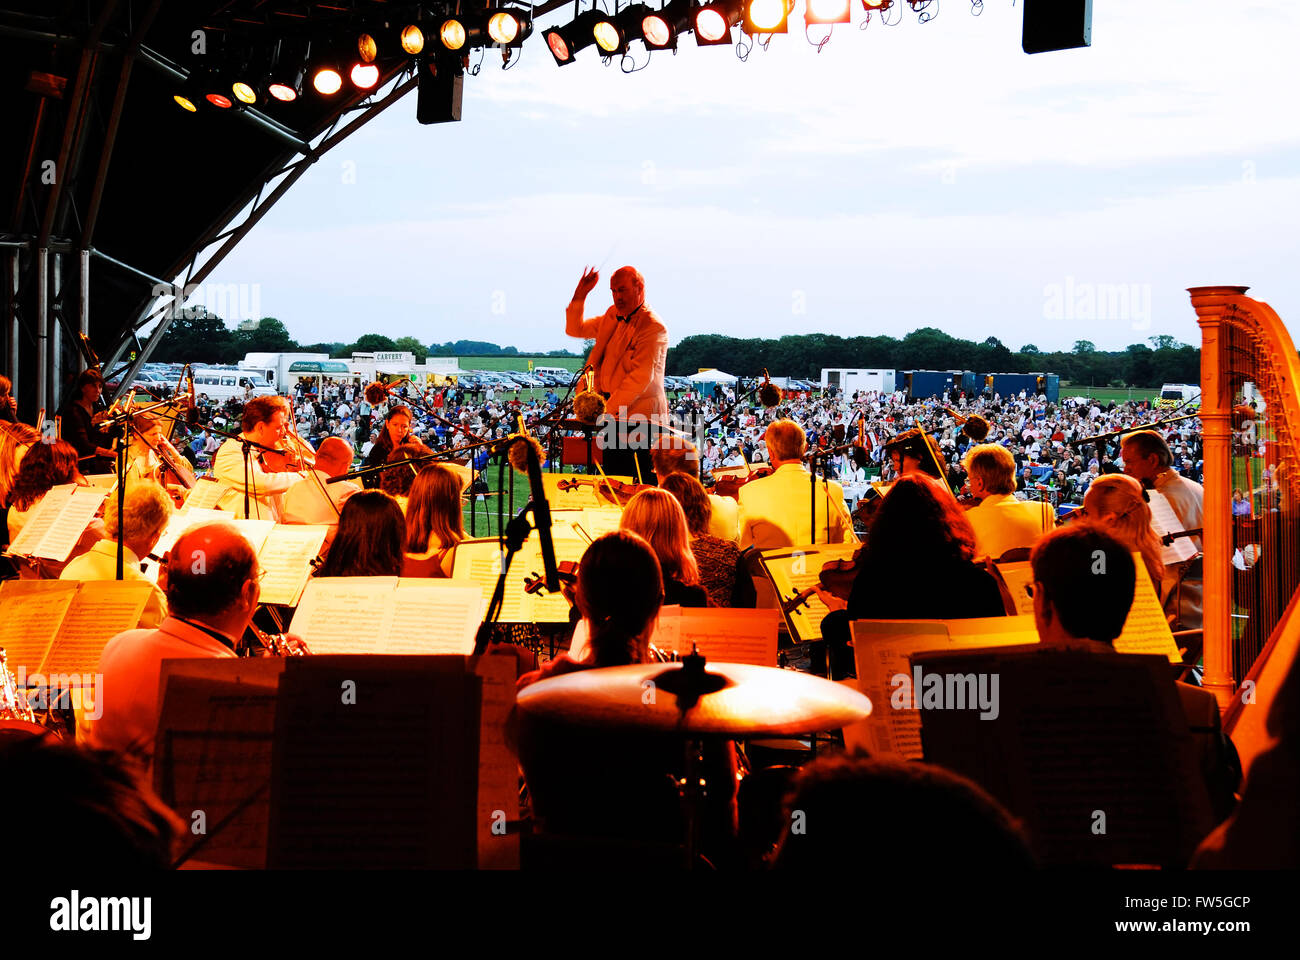 Airfield concert - Orchestra at the Sywell Aerodrome, Northamptonshire, UK. - Stock Image